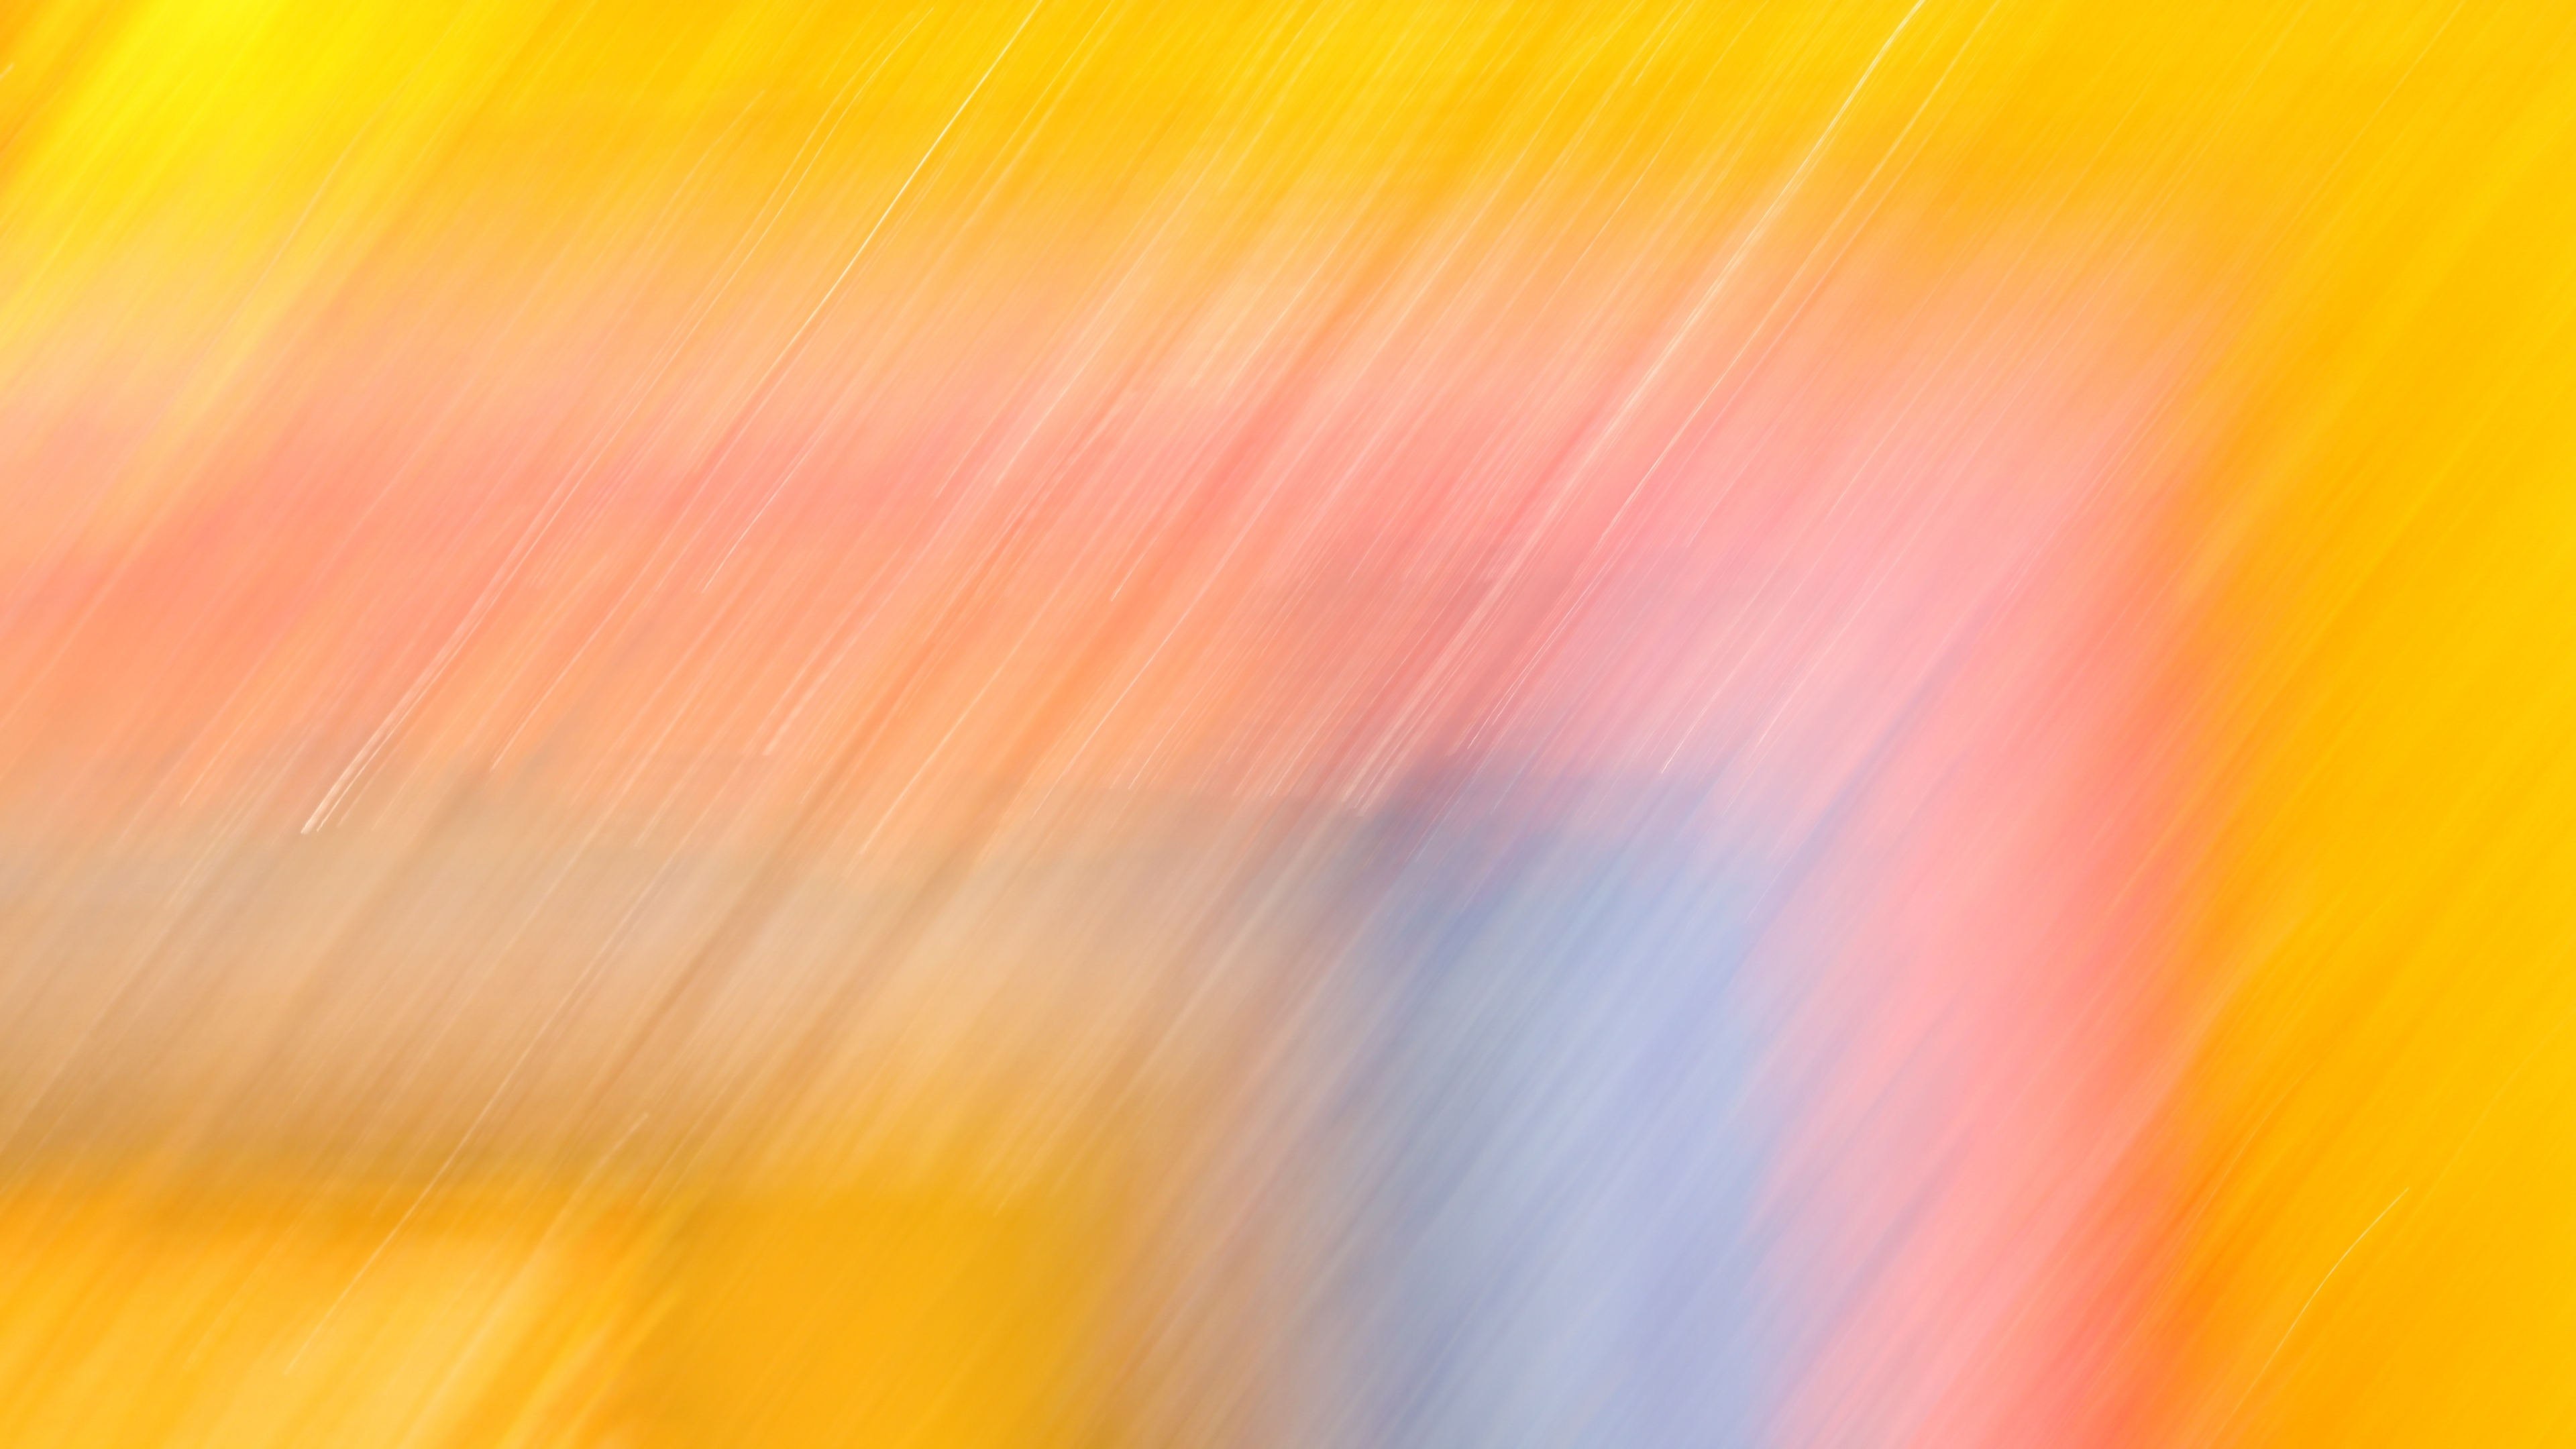 Yellow Bright Abstract Lines 4k Hd Abstract 4k Wallpapers Images Backgrounds Photos And Pictures